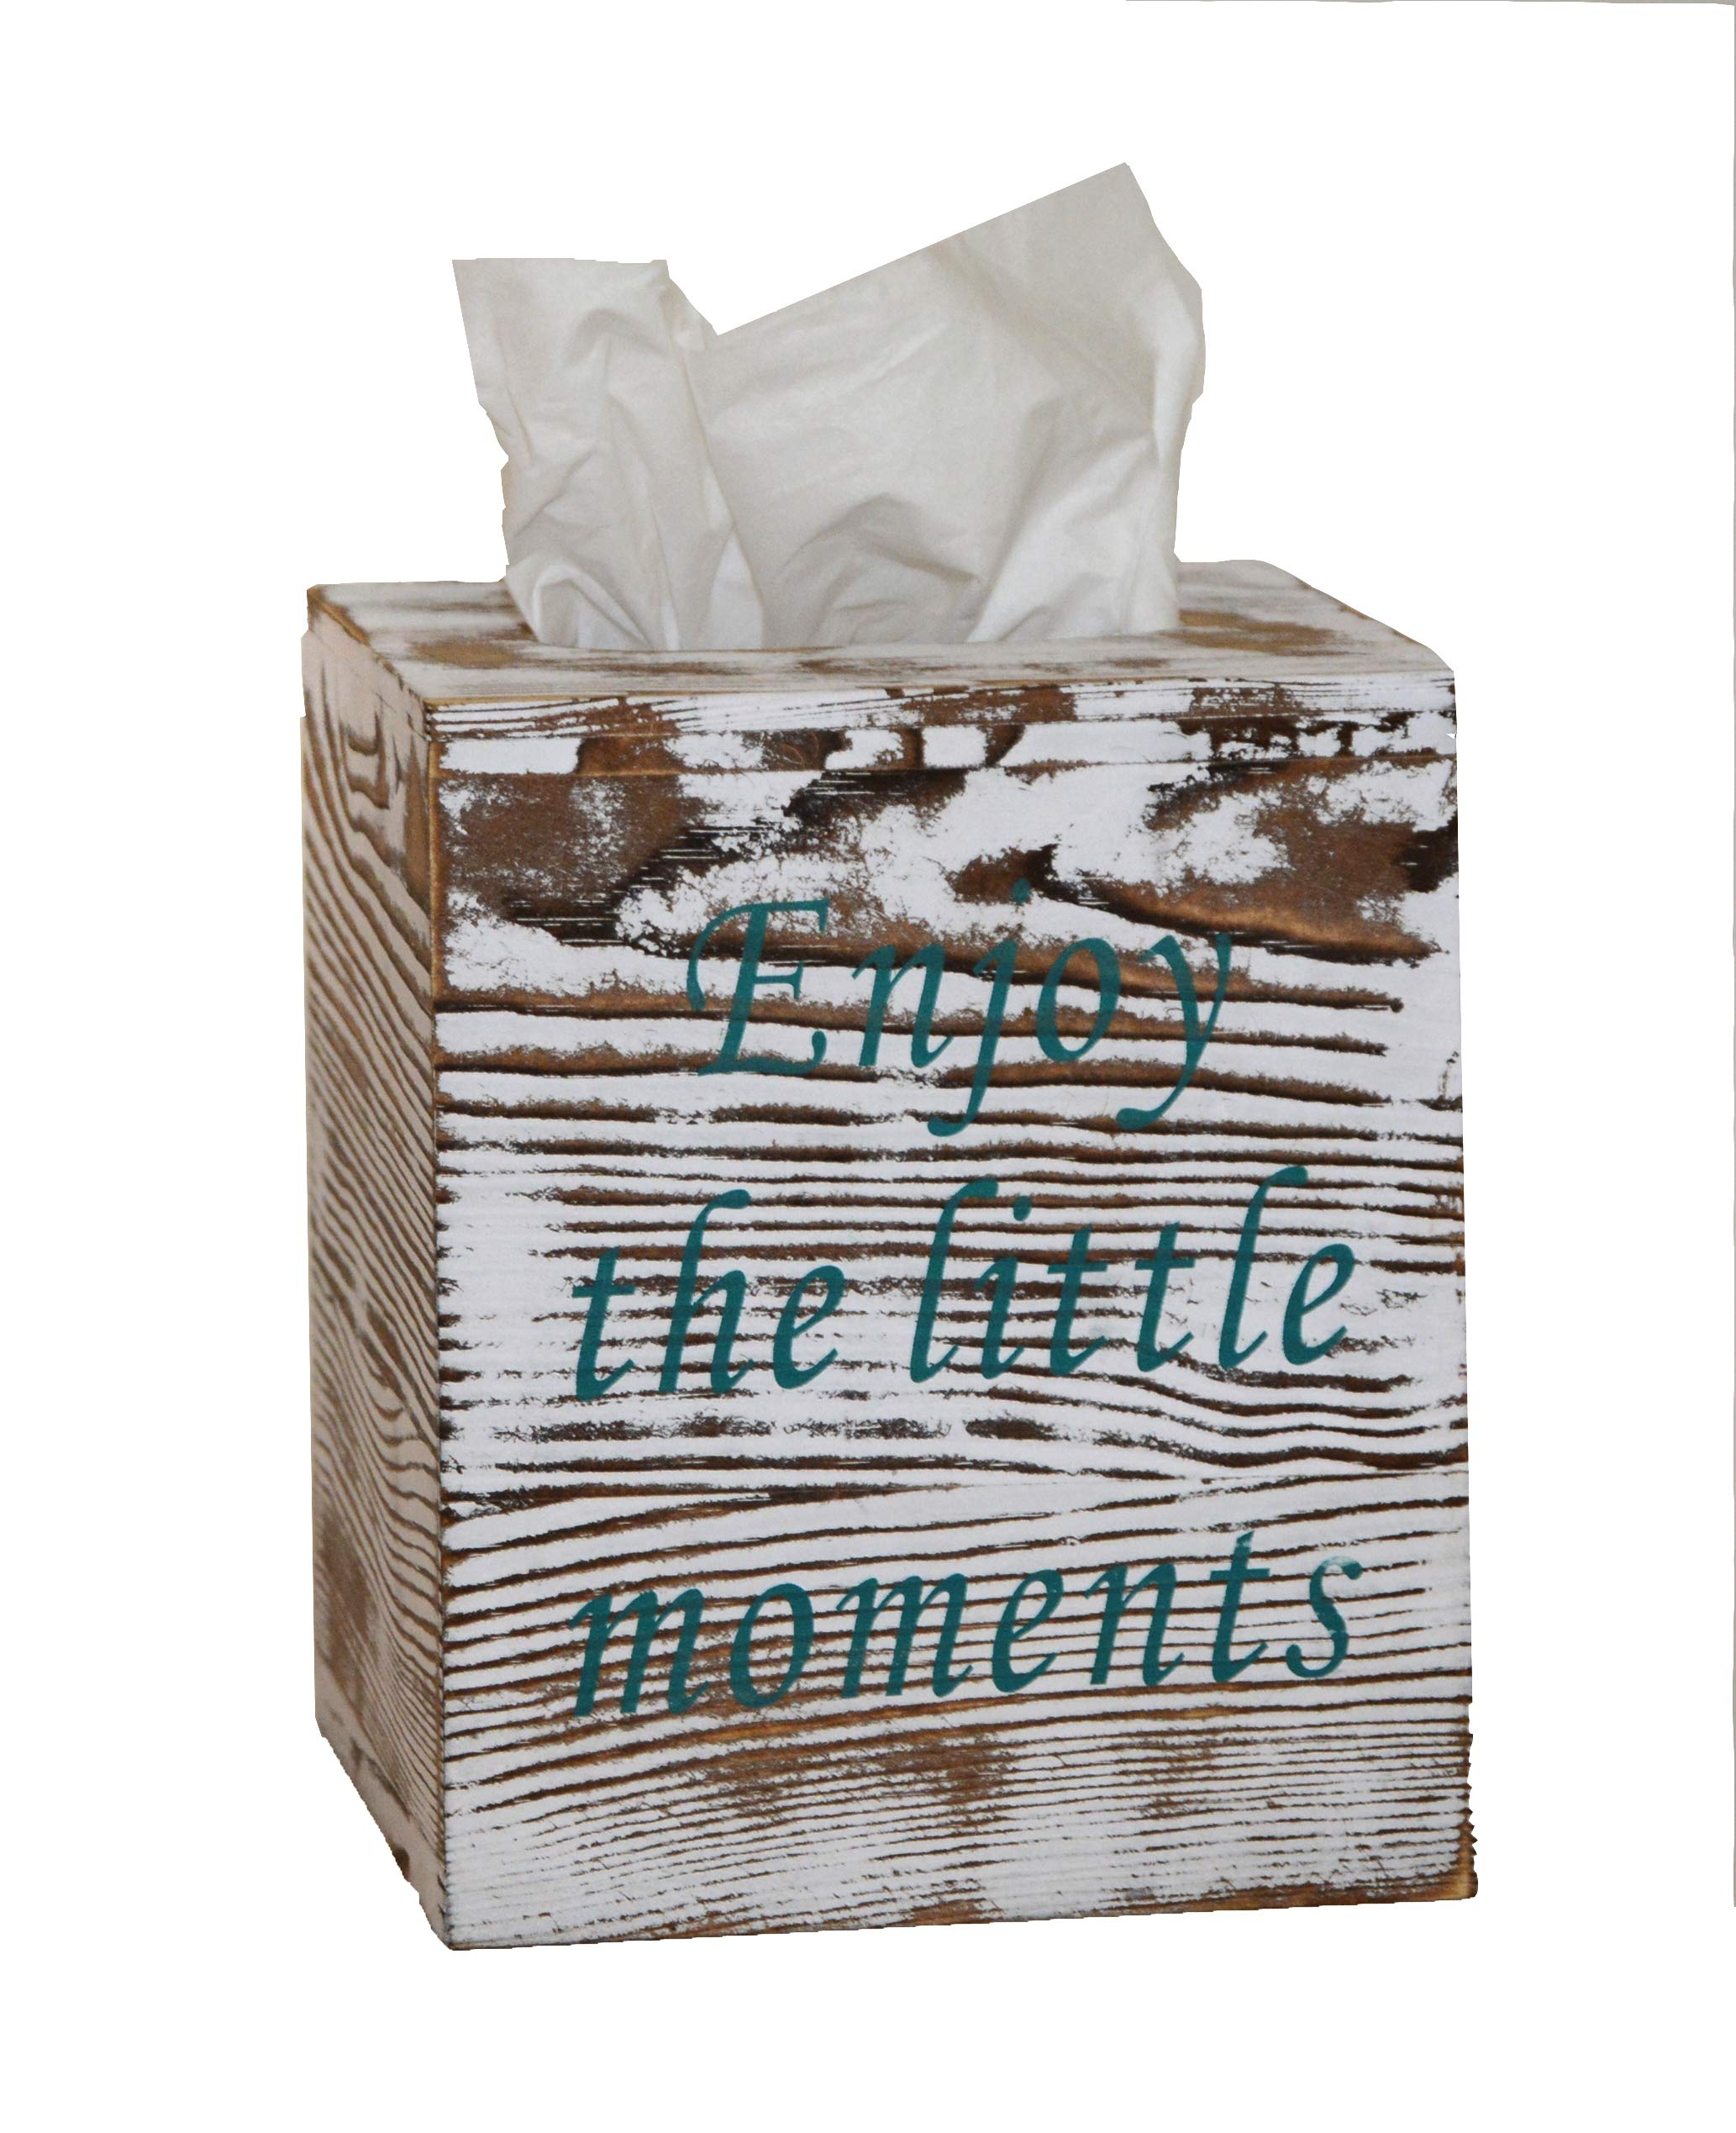 Rustic Wood Tissue Box Cover Included Slide Out Bottom Panel Kleenex Box Holder with 2 mottos Printed Perfect for Farmhouse bathrooms Decor and More by Soffer